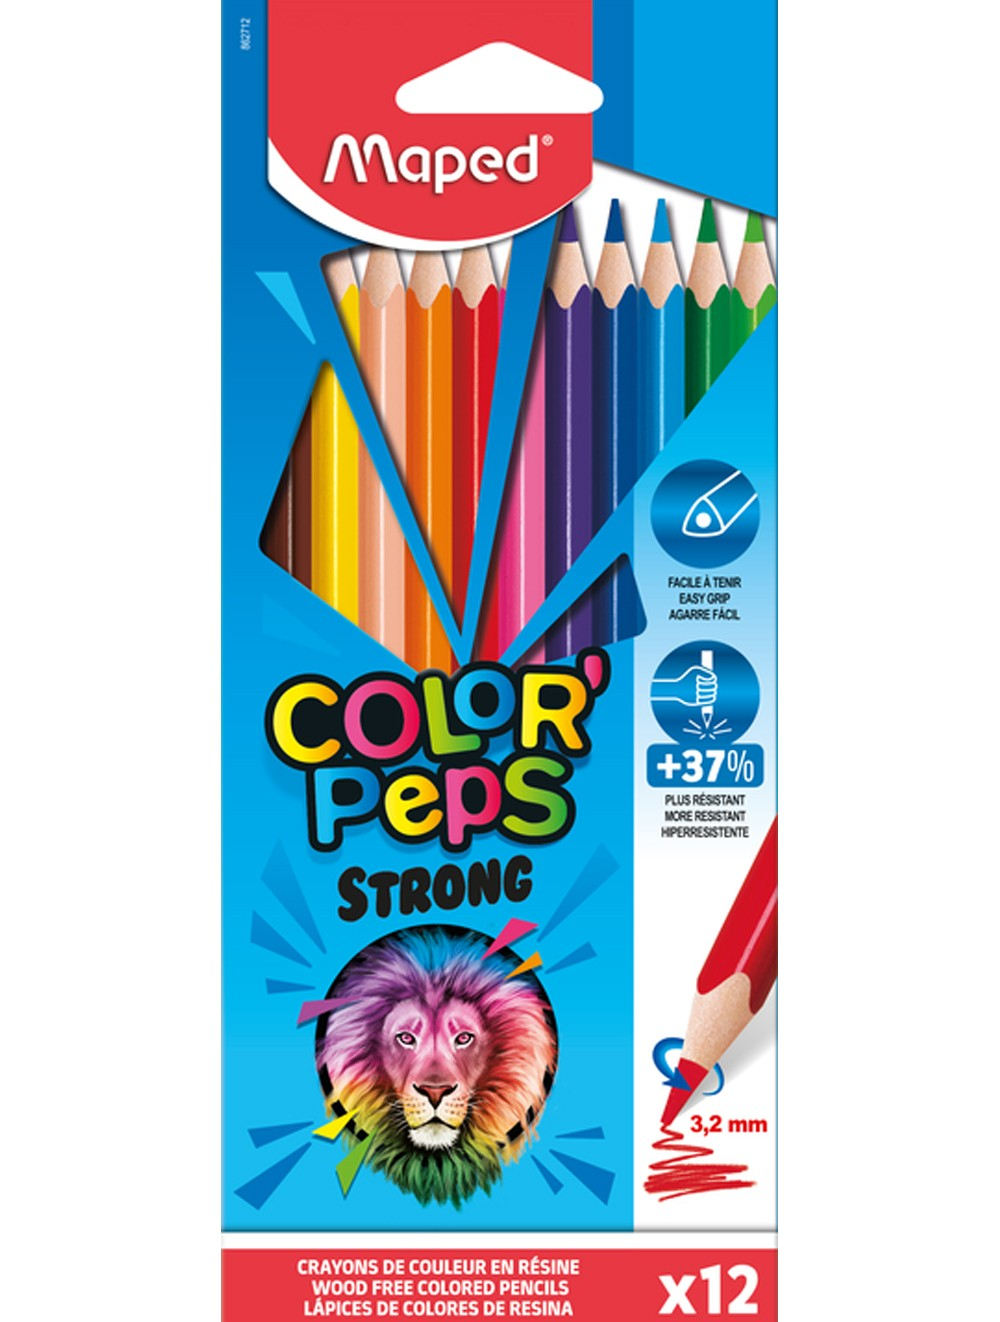 MAPED COLOR'PEPS STRONG x 12 COLOURED PENCILS